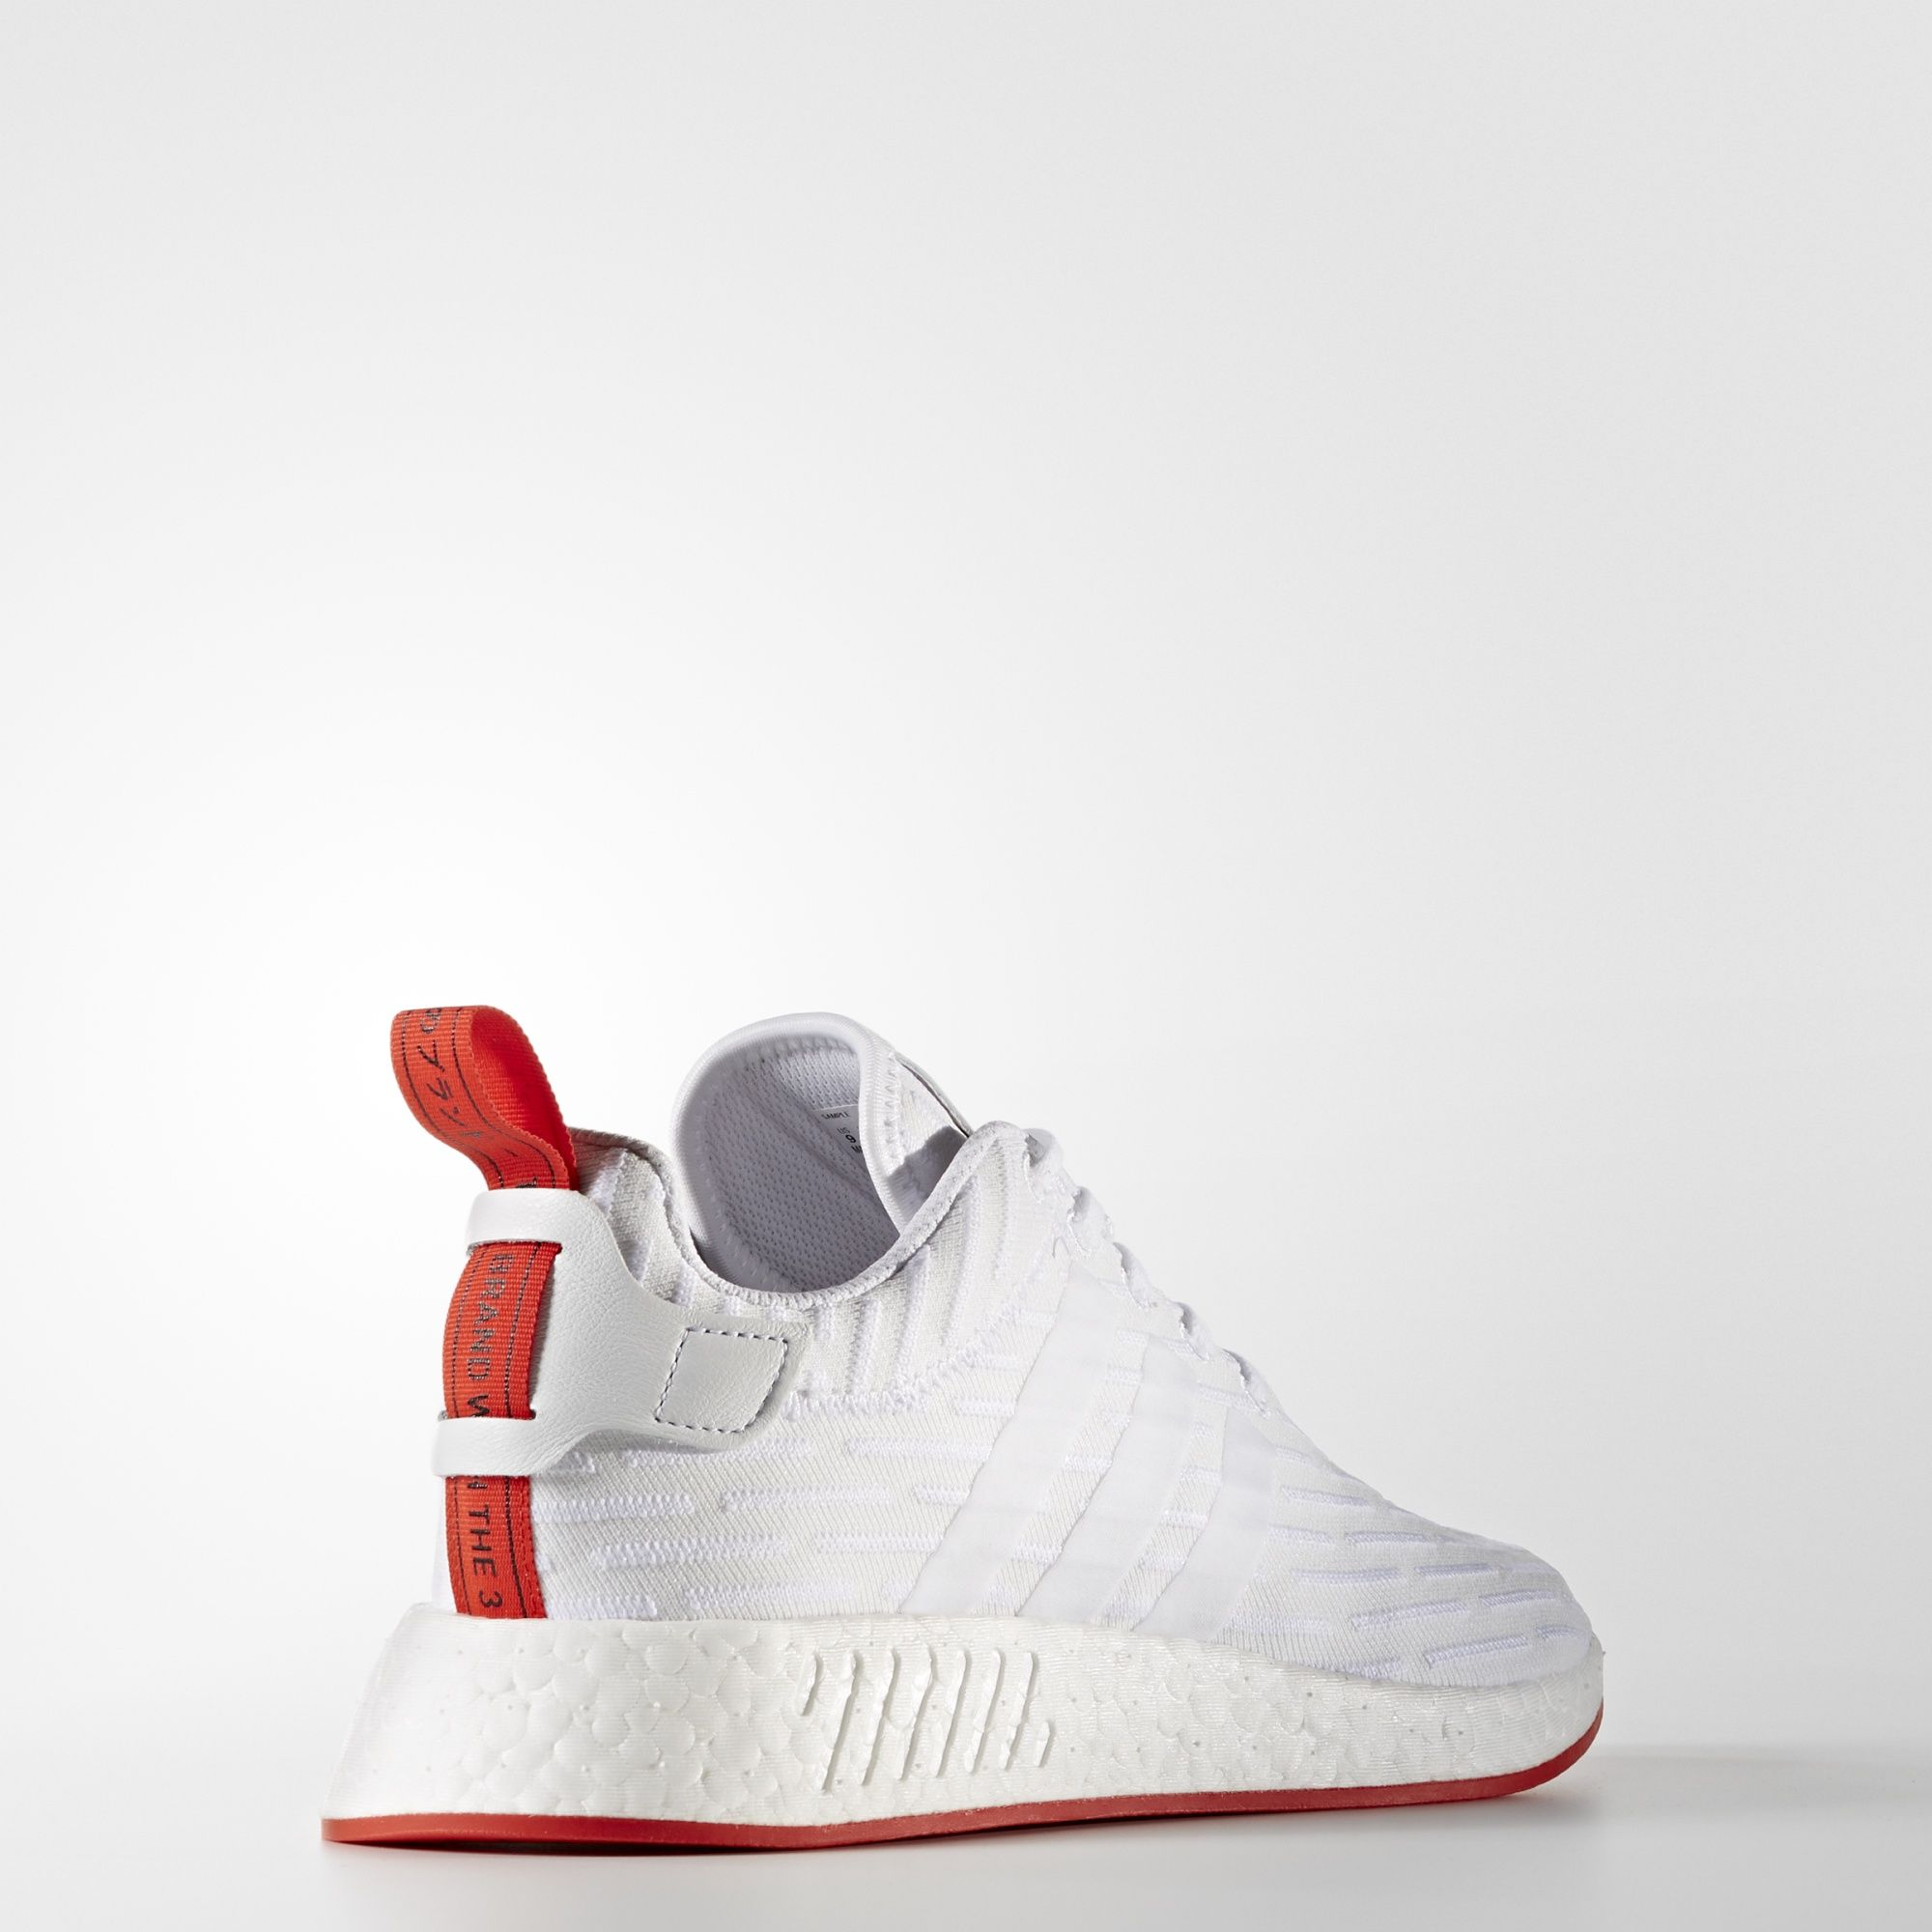 adidas NMD R2 Primeknit White Core Red BA7253 3